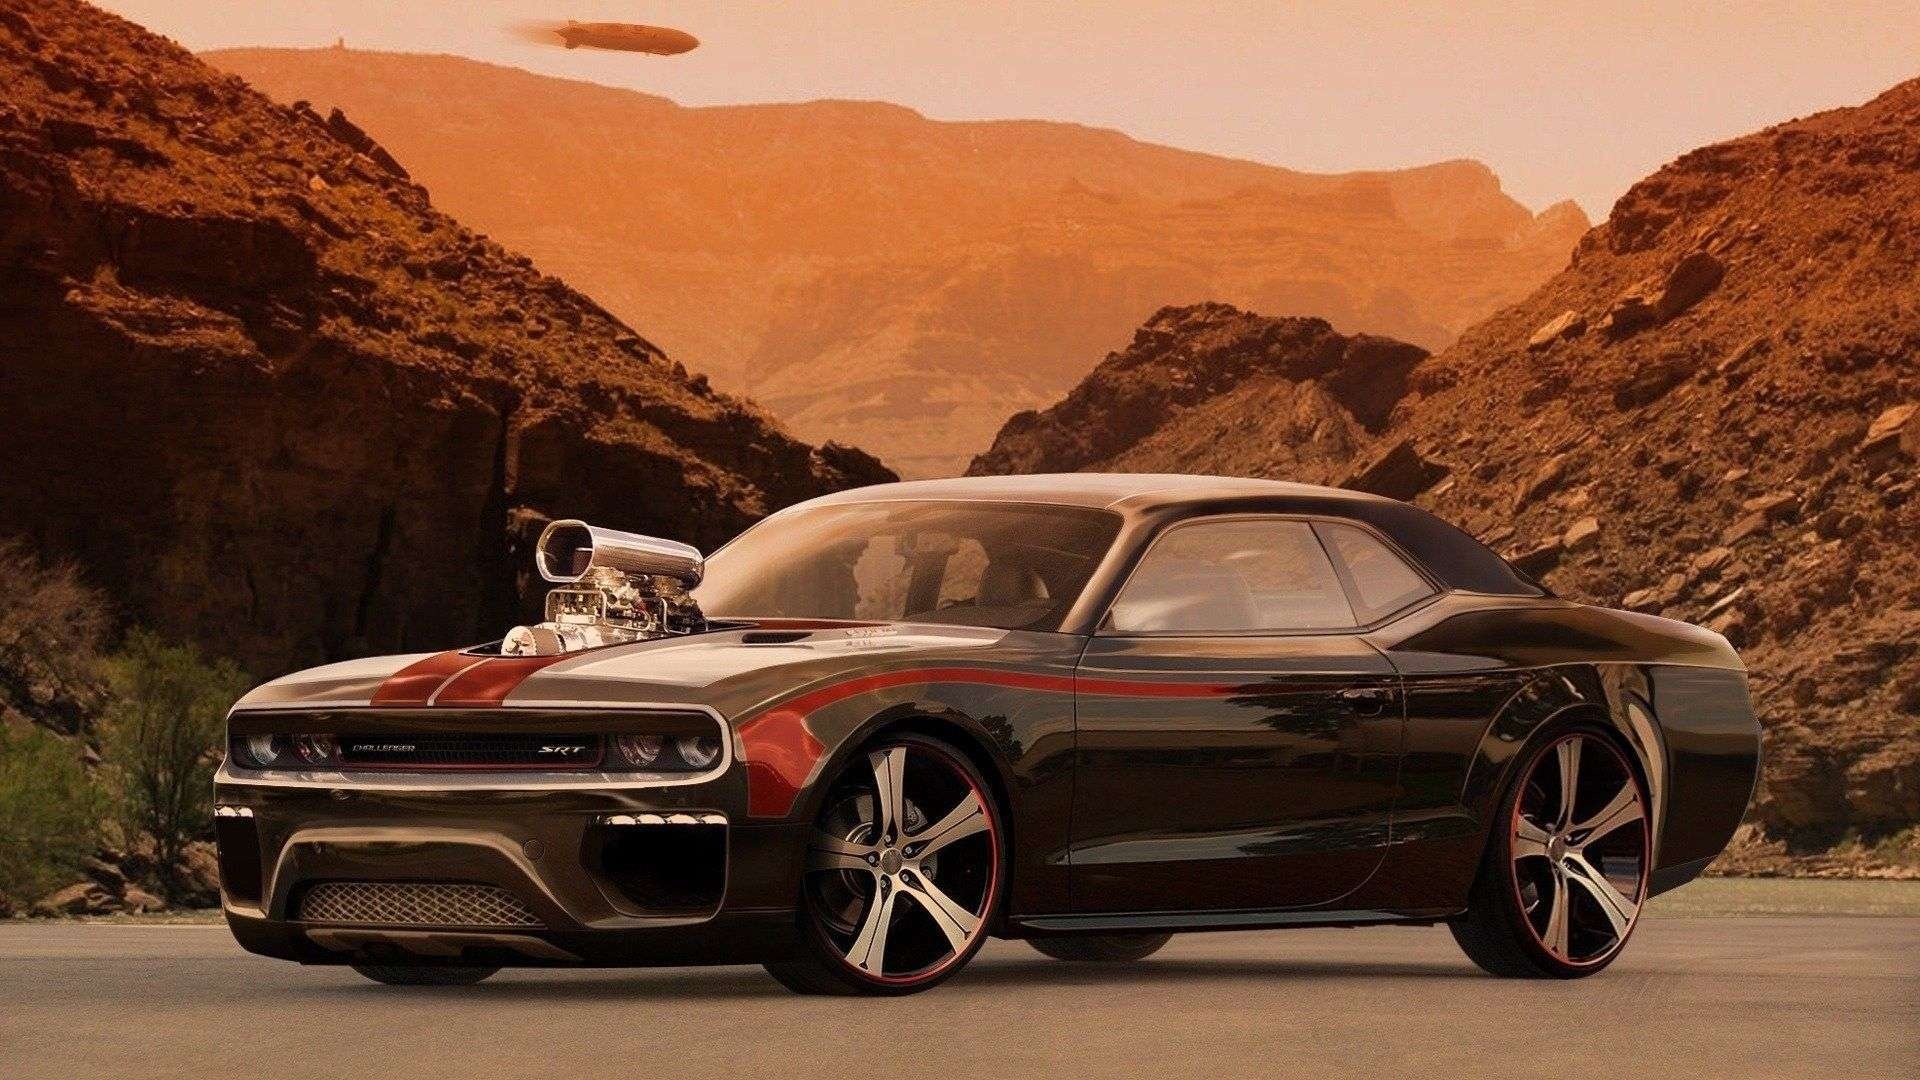 American Cars Wallpapers Wallpaper Cave